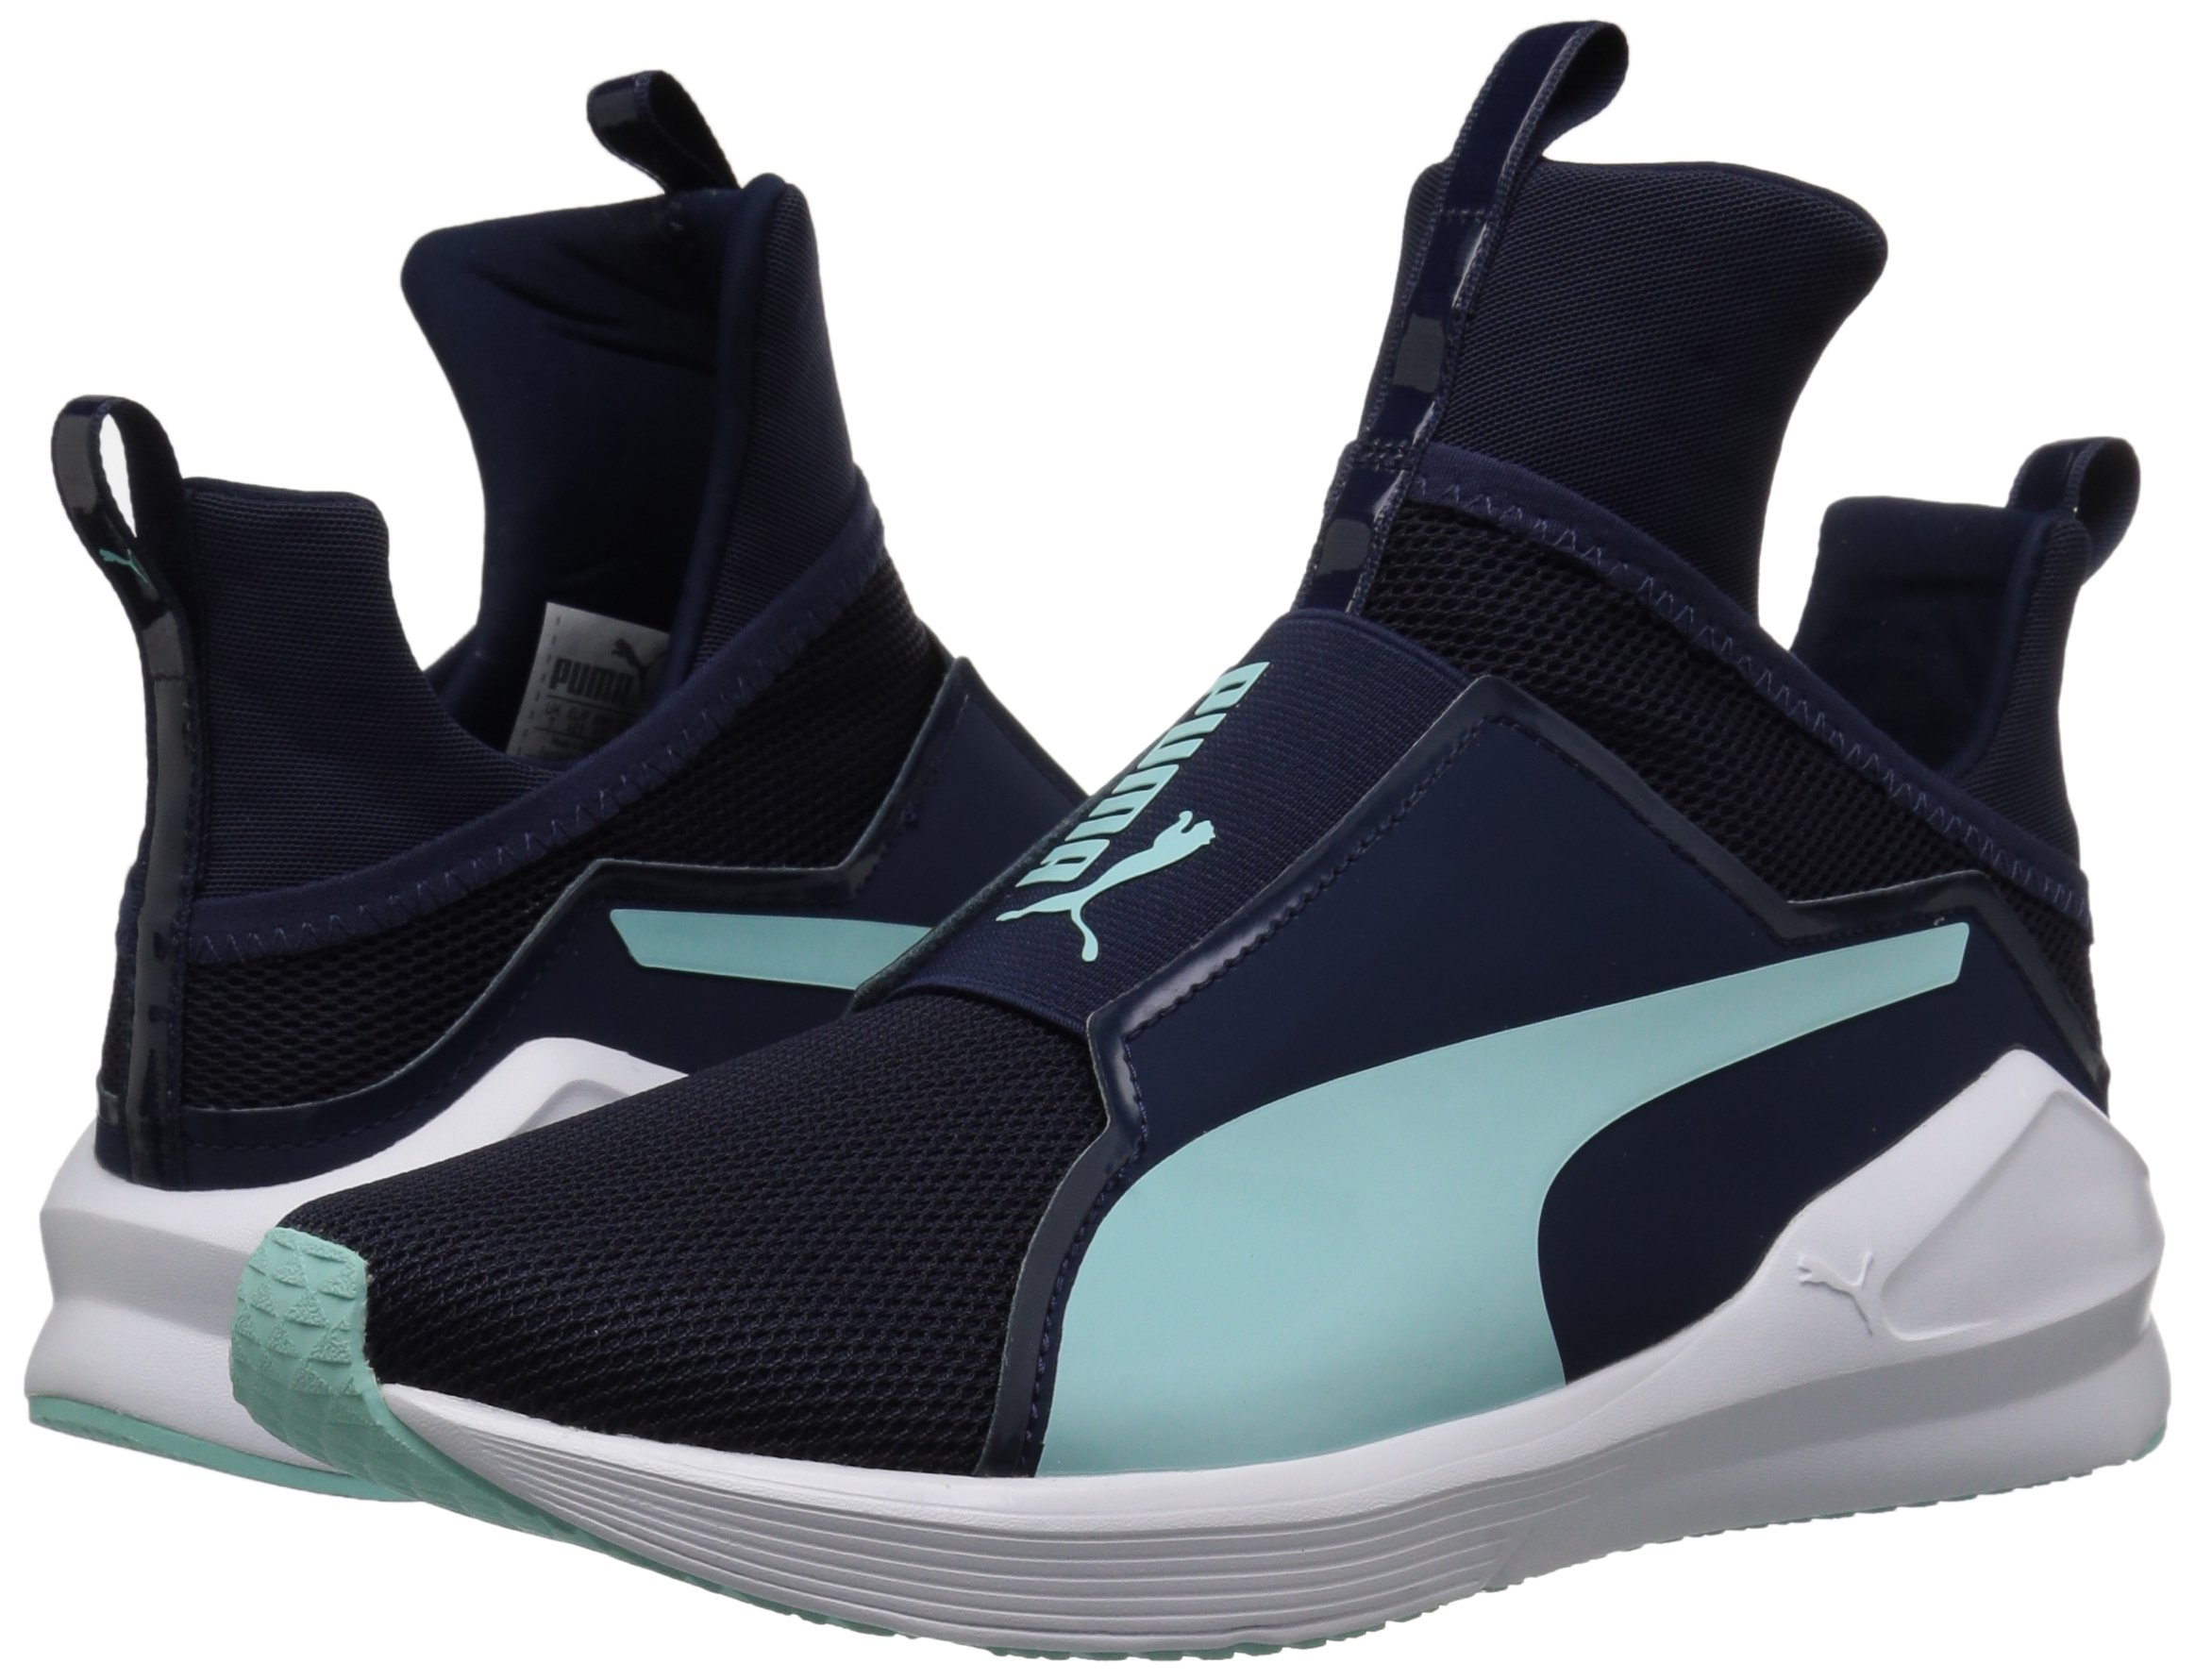 PUMA Women's Fierce Core Sneaker, Peacoat-Island Paradise, 9 M US by PUMA (Image #6)